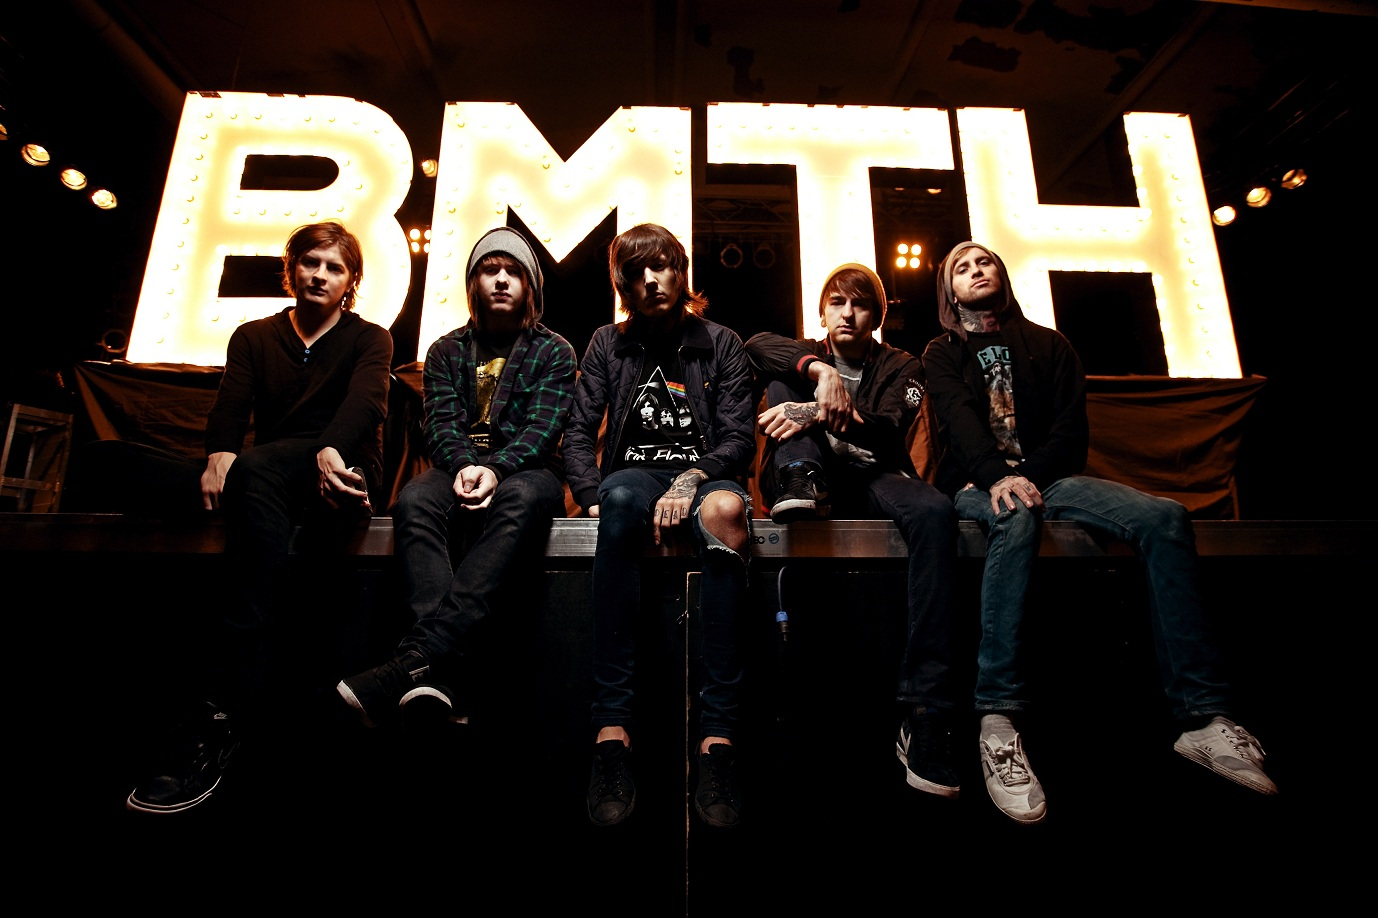 Bring Me The Horizon + Pierce The Veil sidewaves announced!